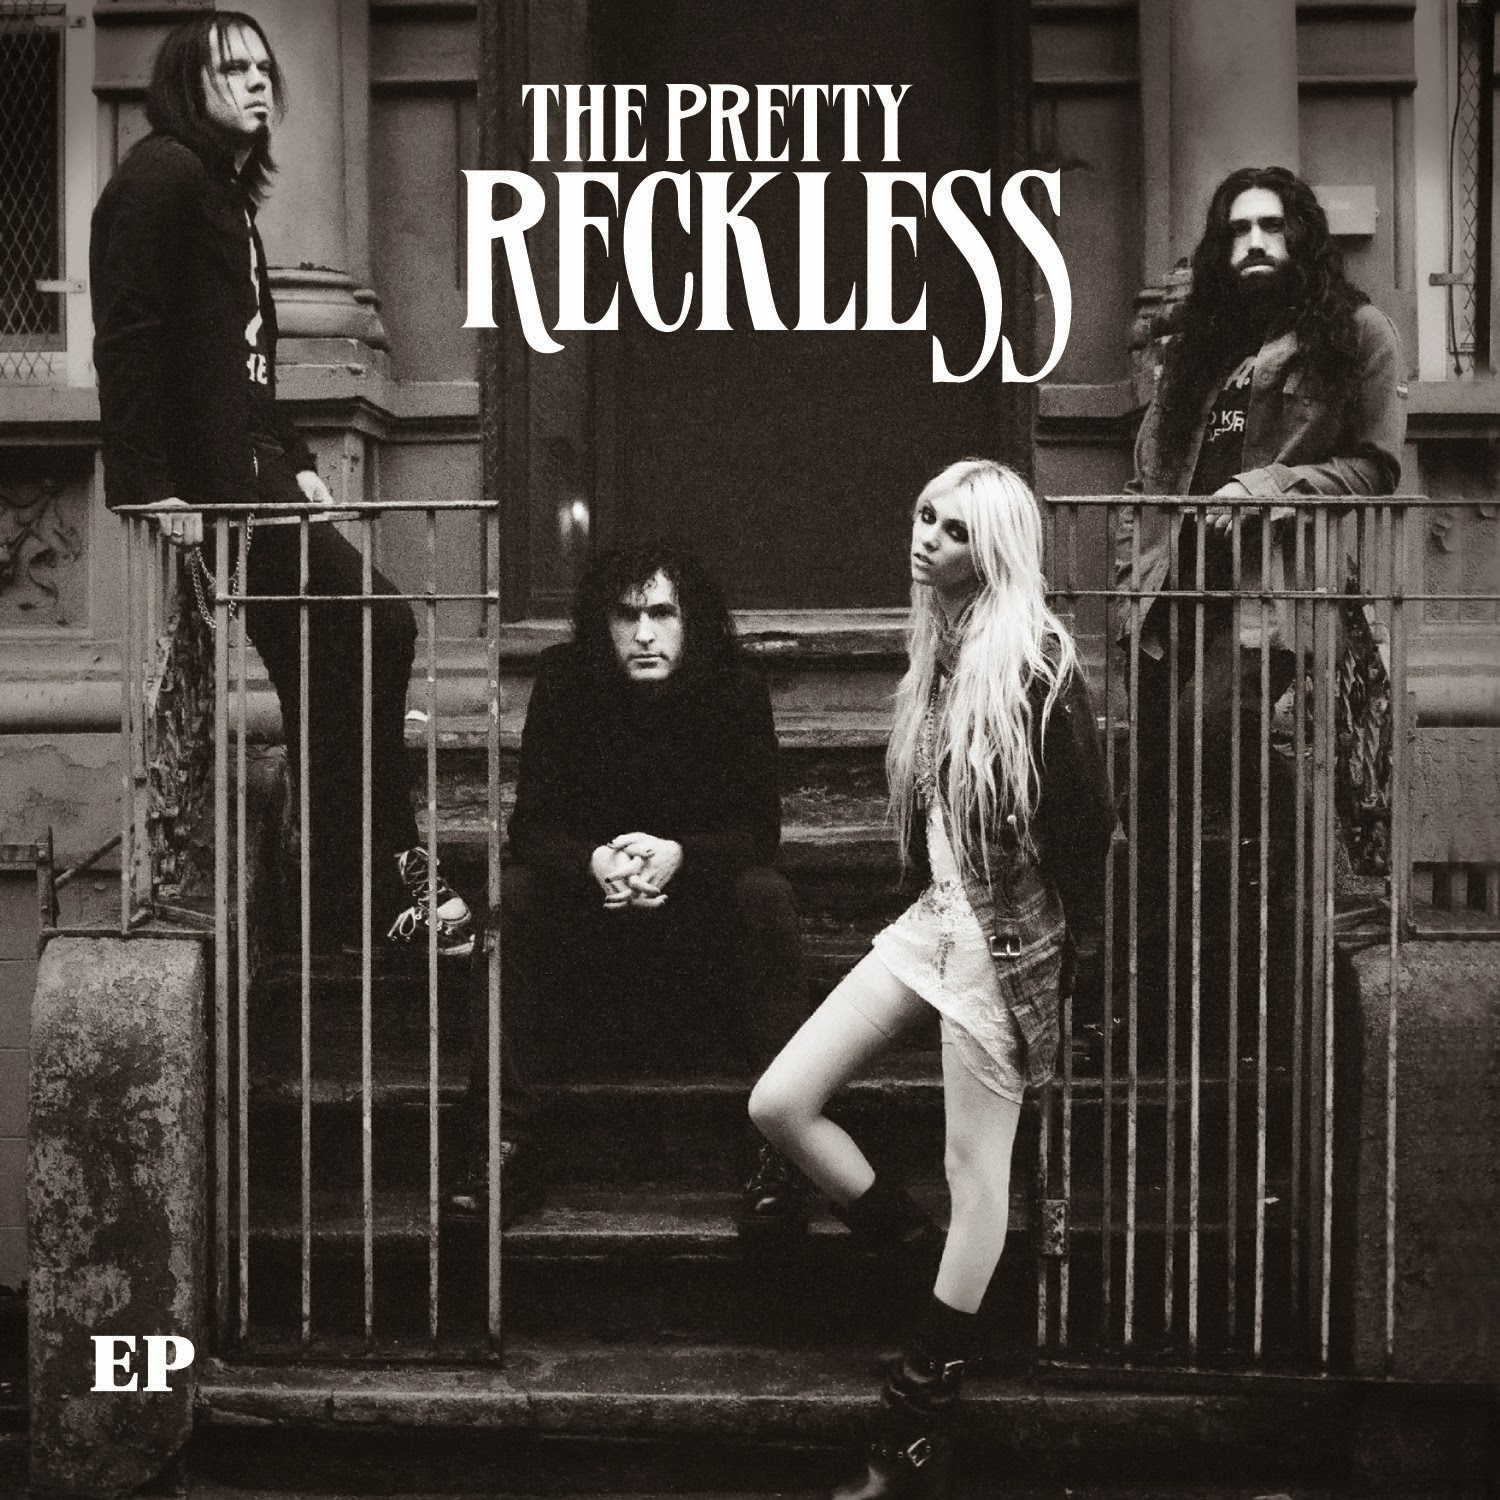 Going to hell pretty album reckless